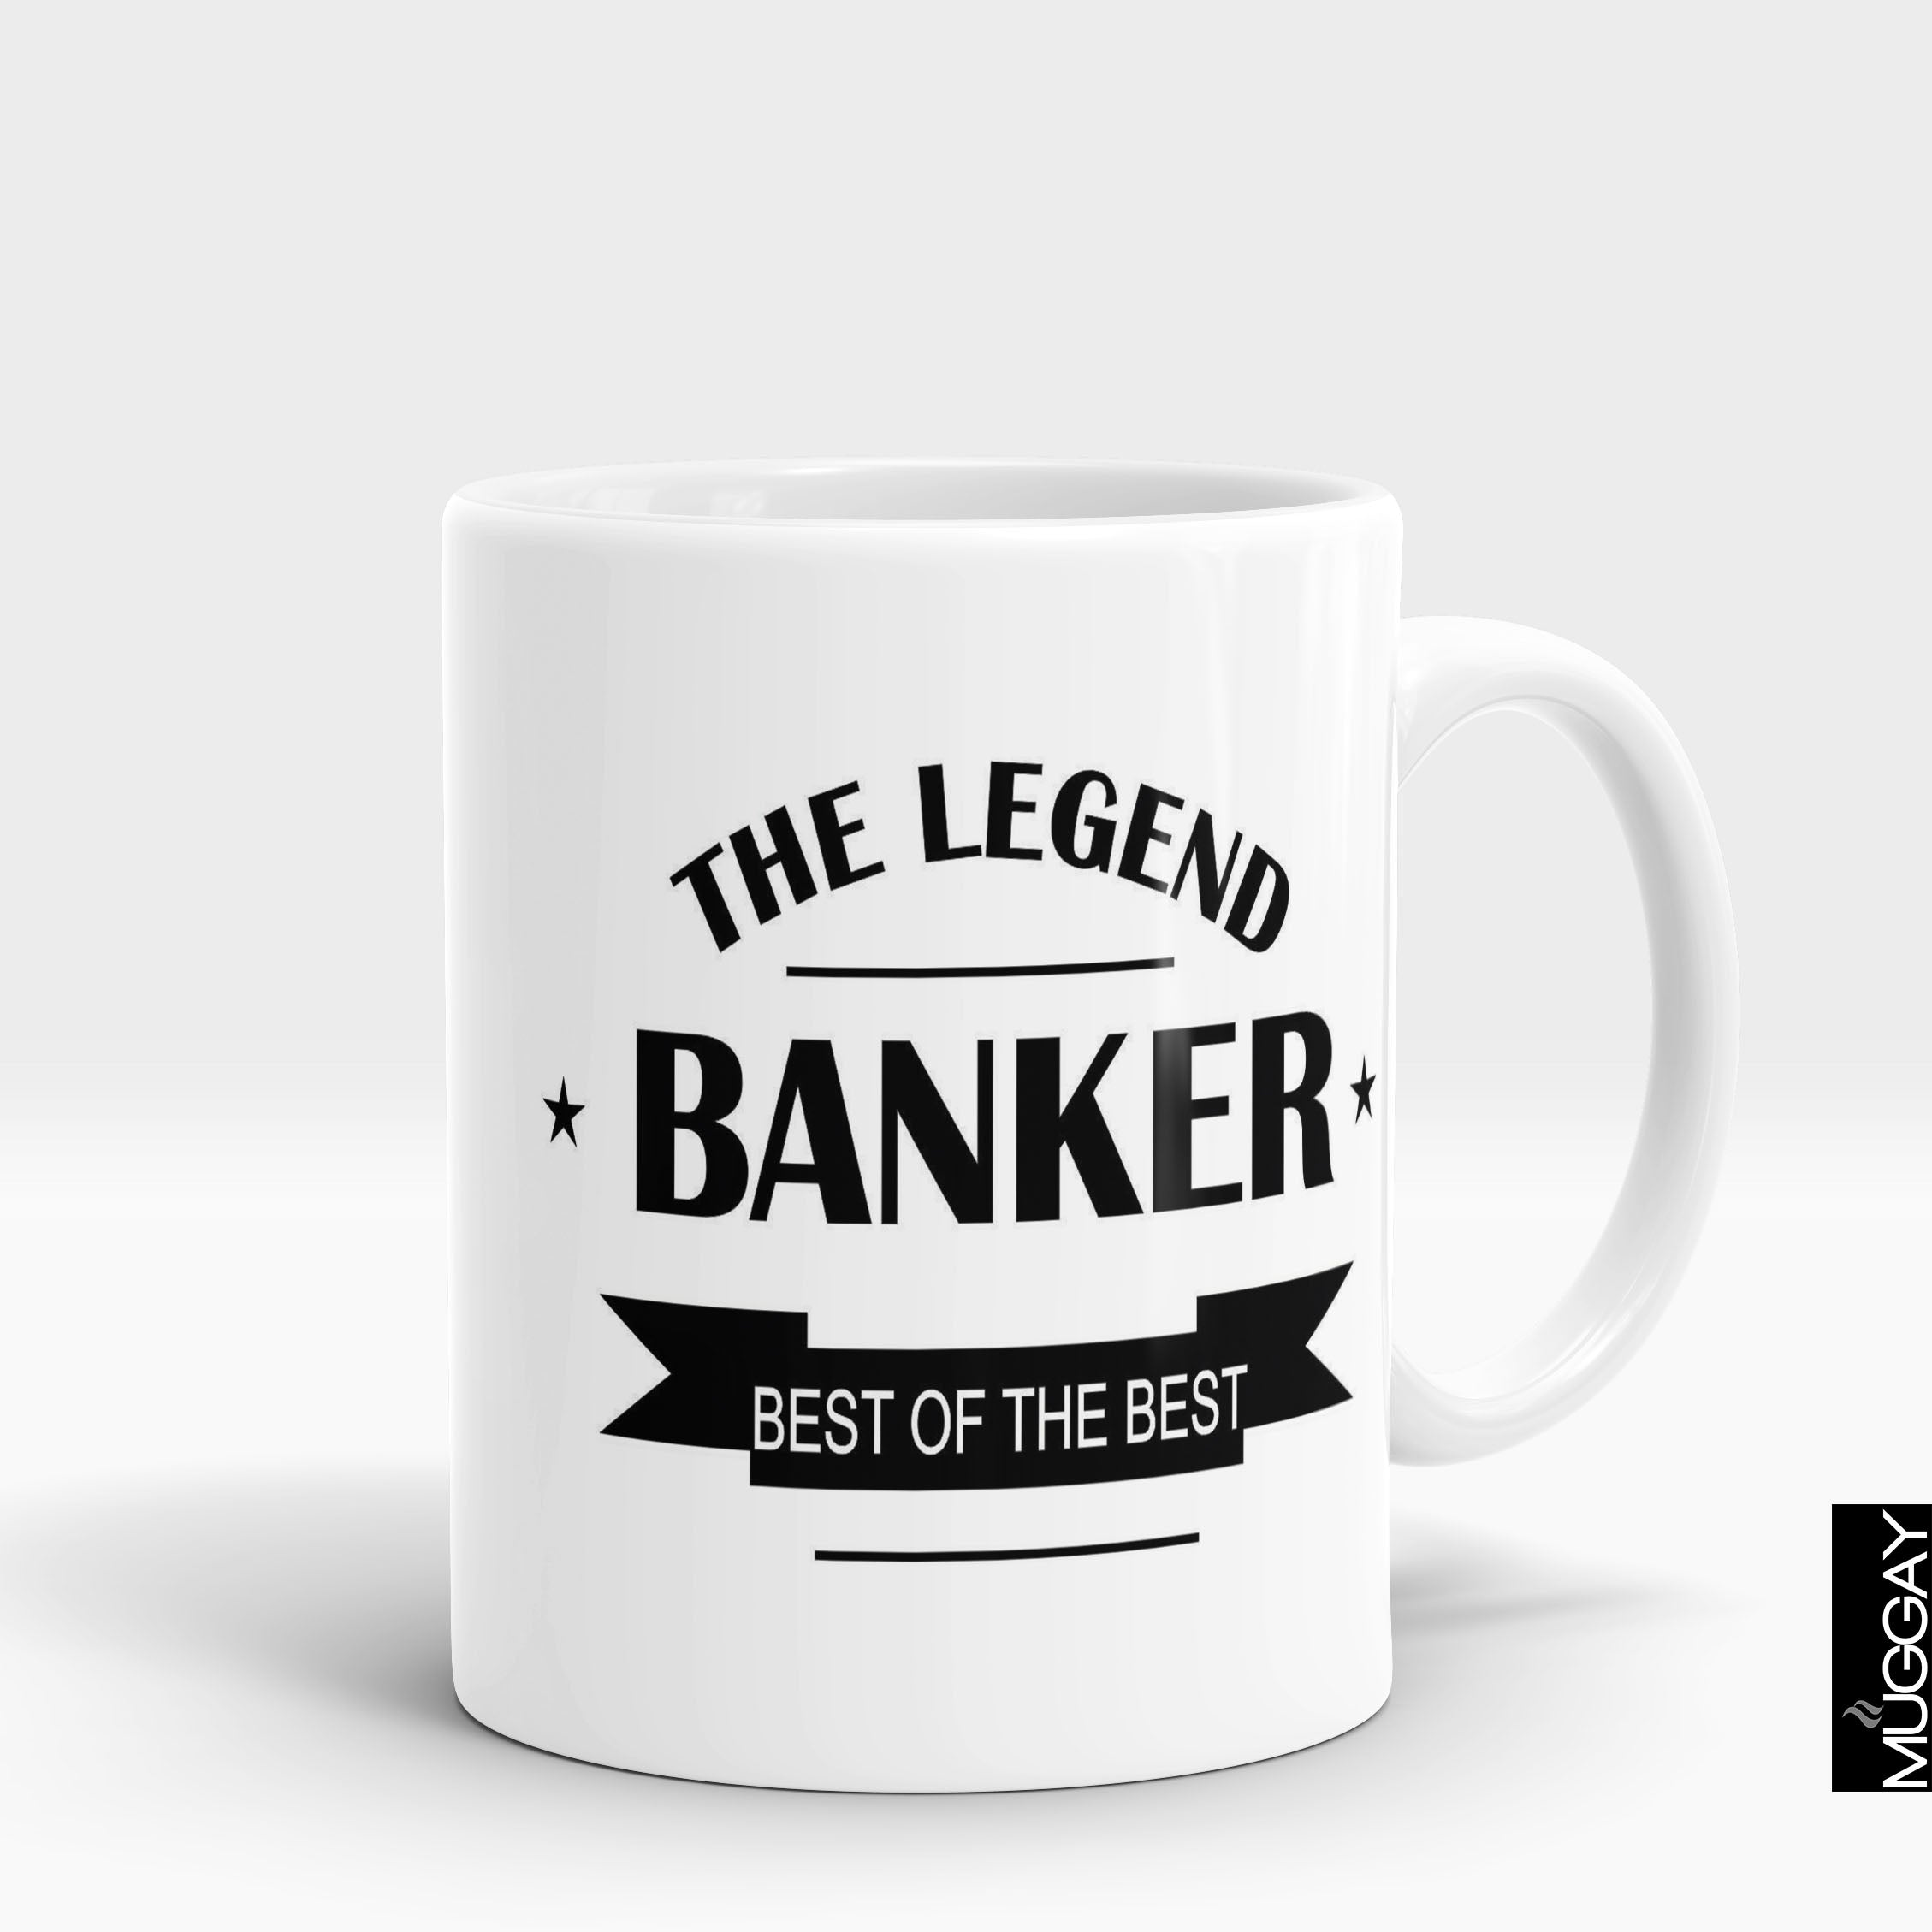 Mugs for Bankers banker3